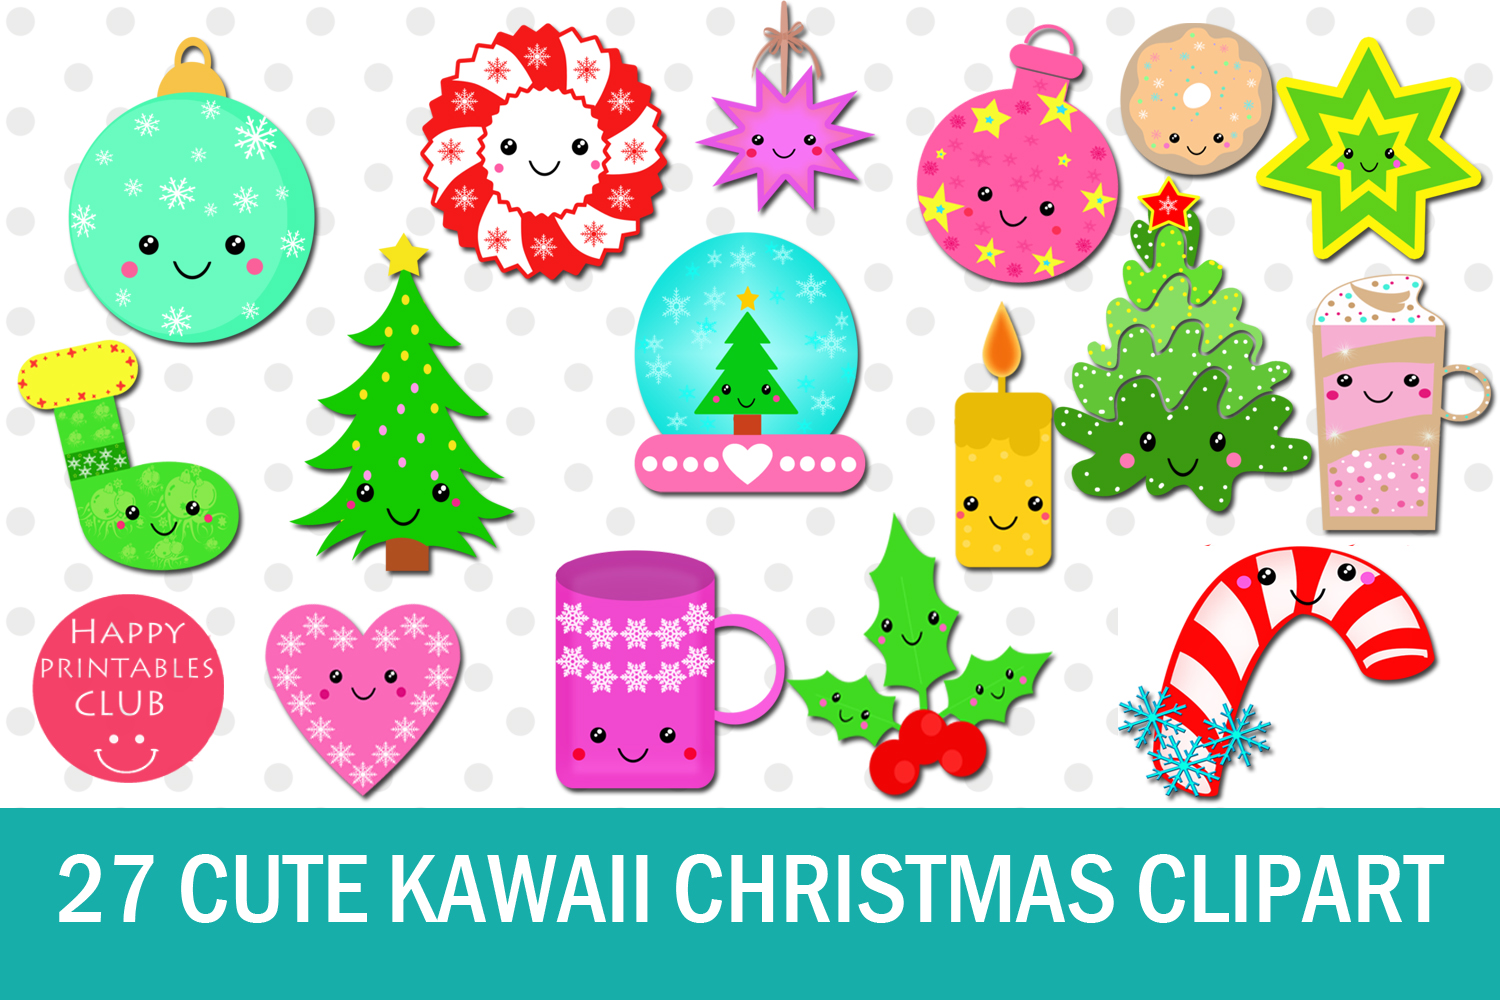 27 Cute Kawaii Christmas Clipart.